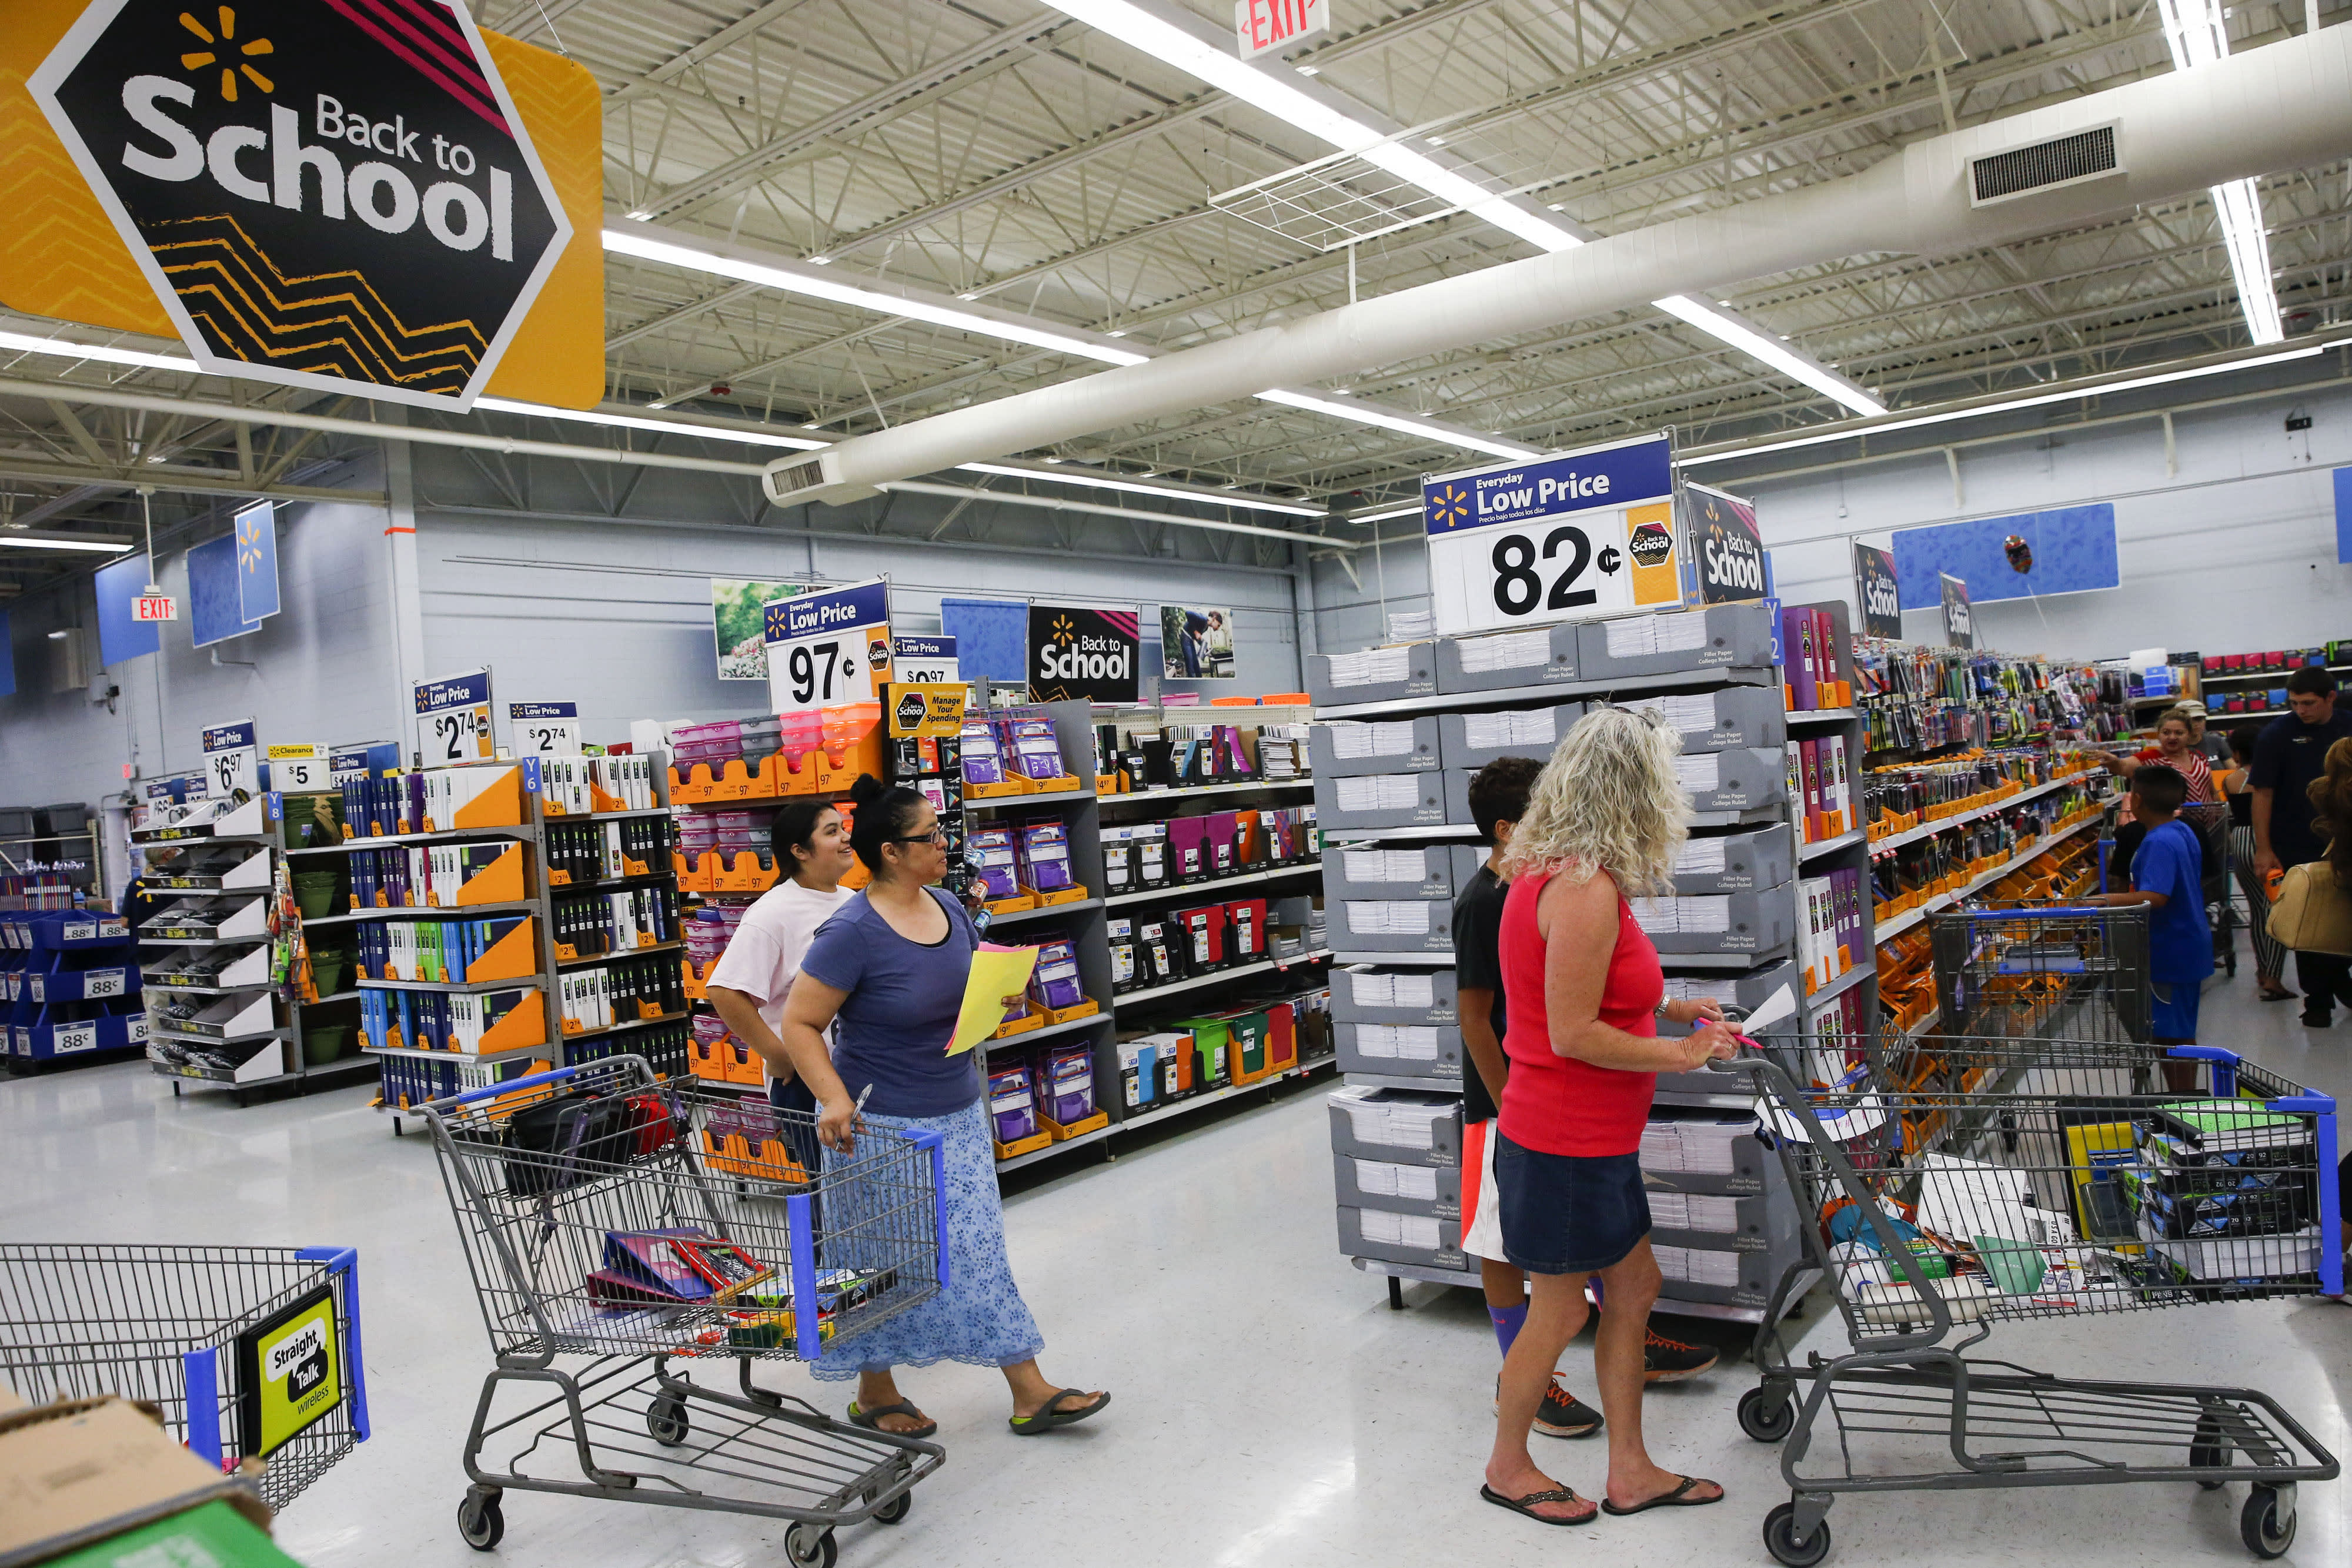 05ecdc62d6c36 Back to school shopping to bring parents back into stores: Deloitte